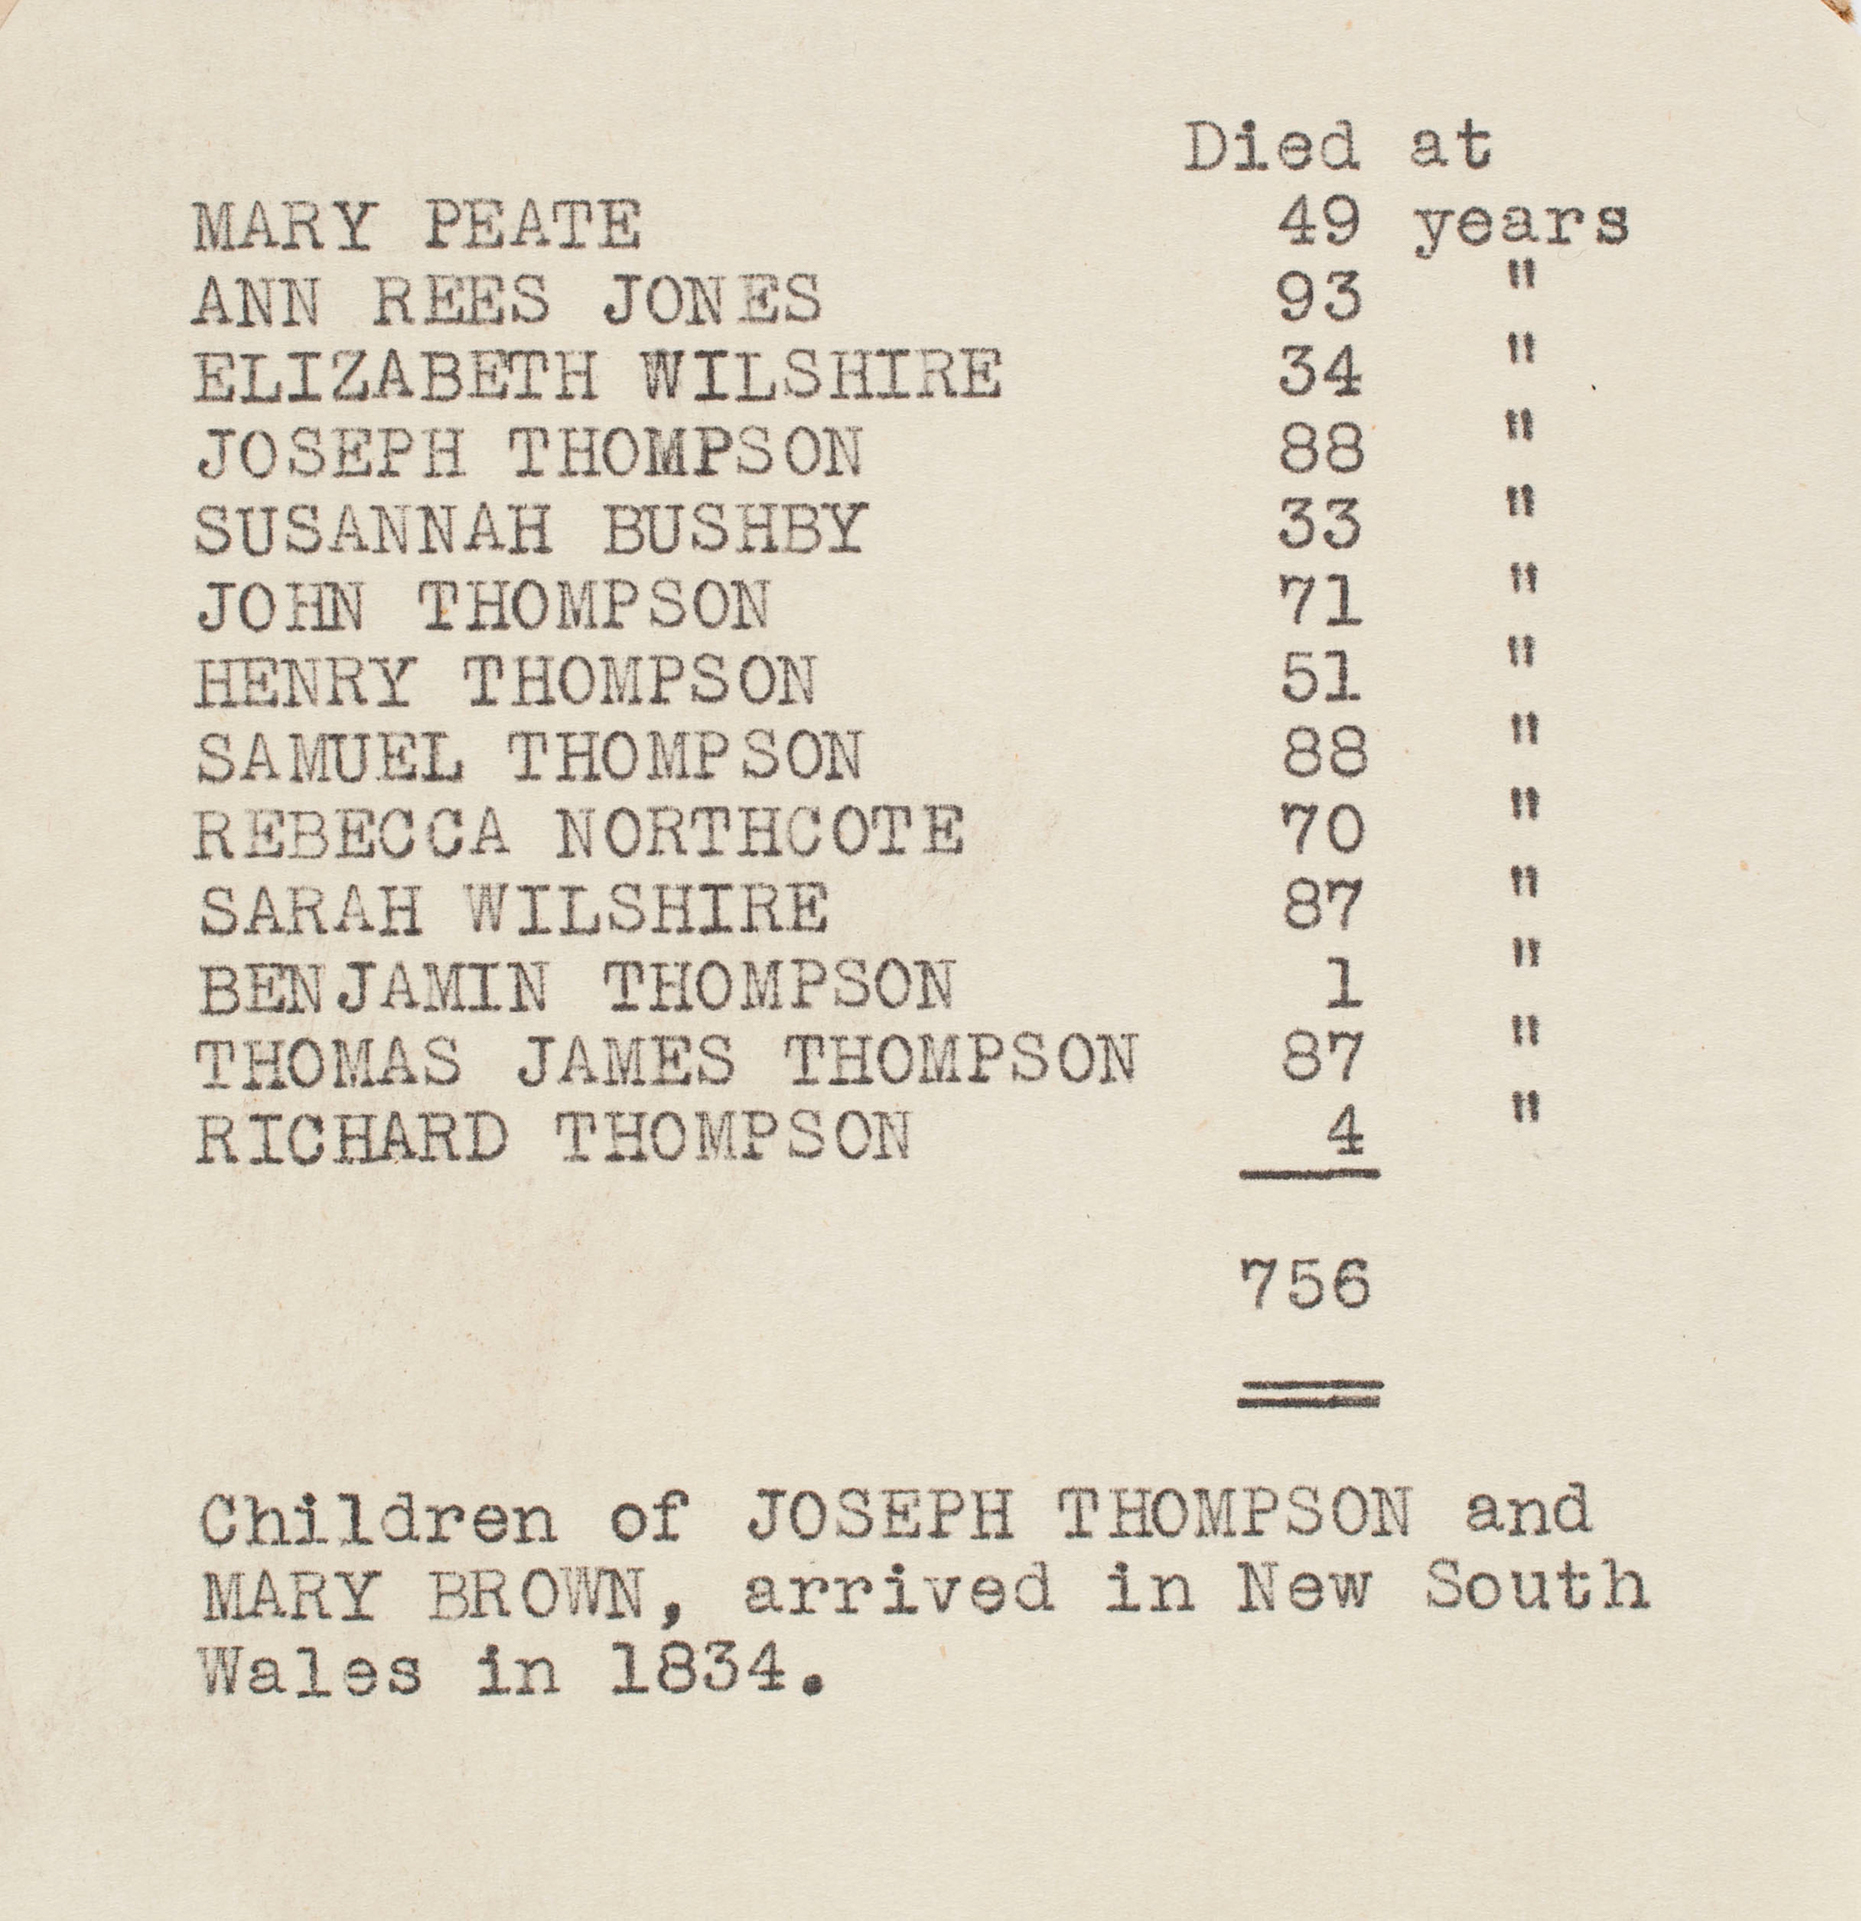 A list of names and ages at death of the Thompsons' children.